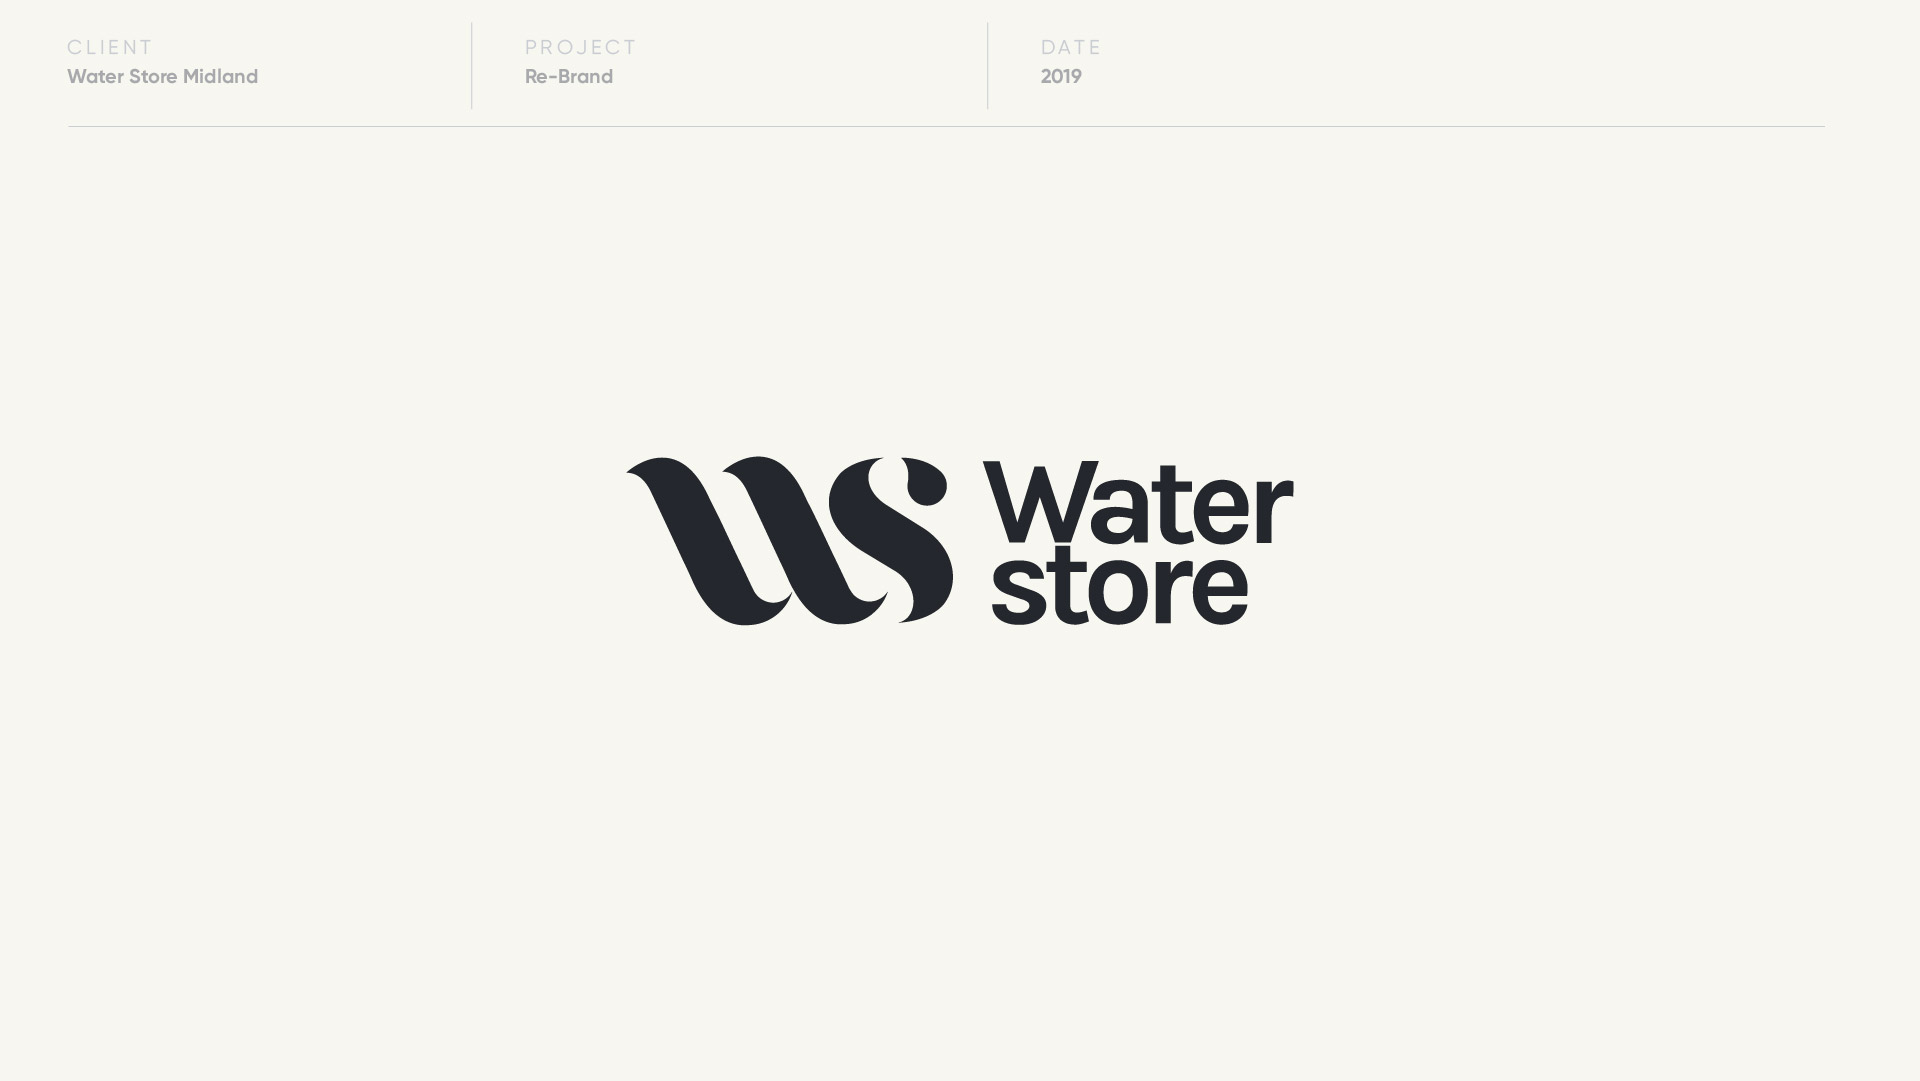 water store midland logo design by anthony mika